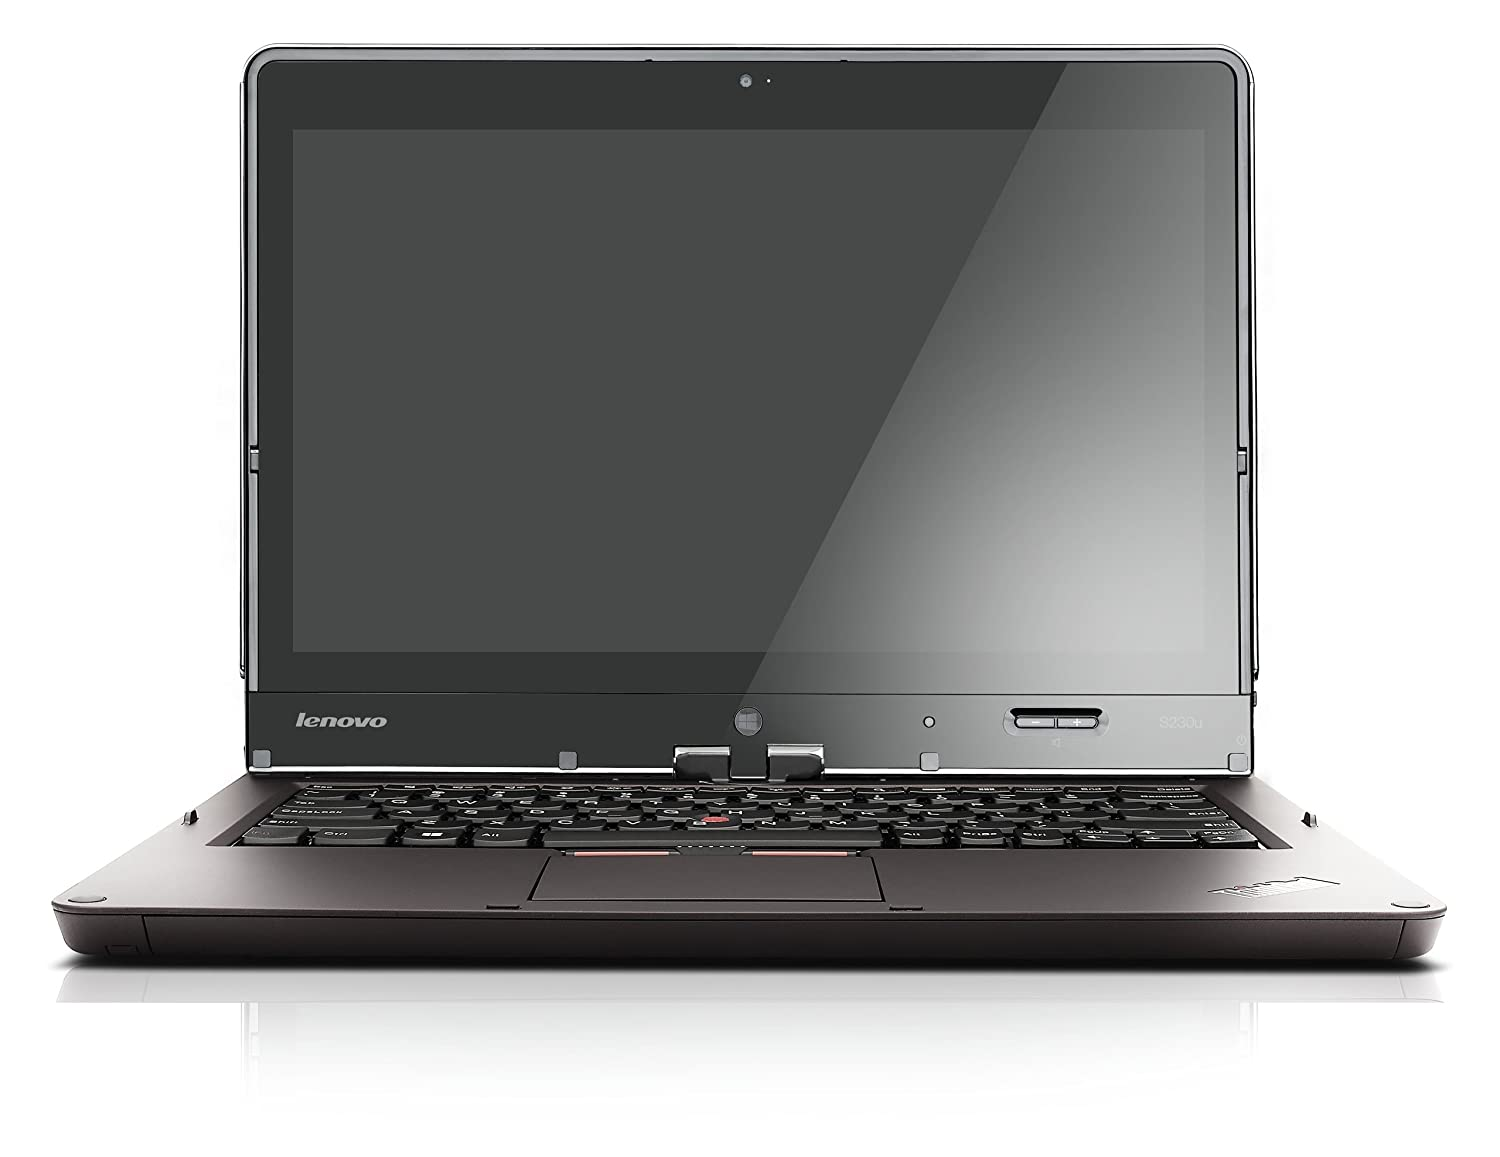 Lenovo ThinkPad Twist S230u Power Management Windows 7 64-BIT